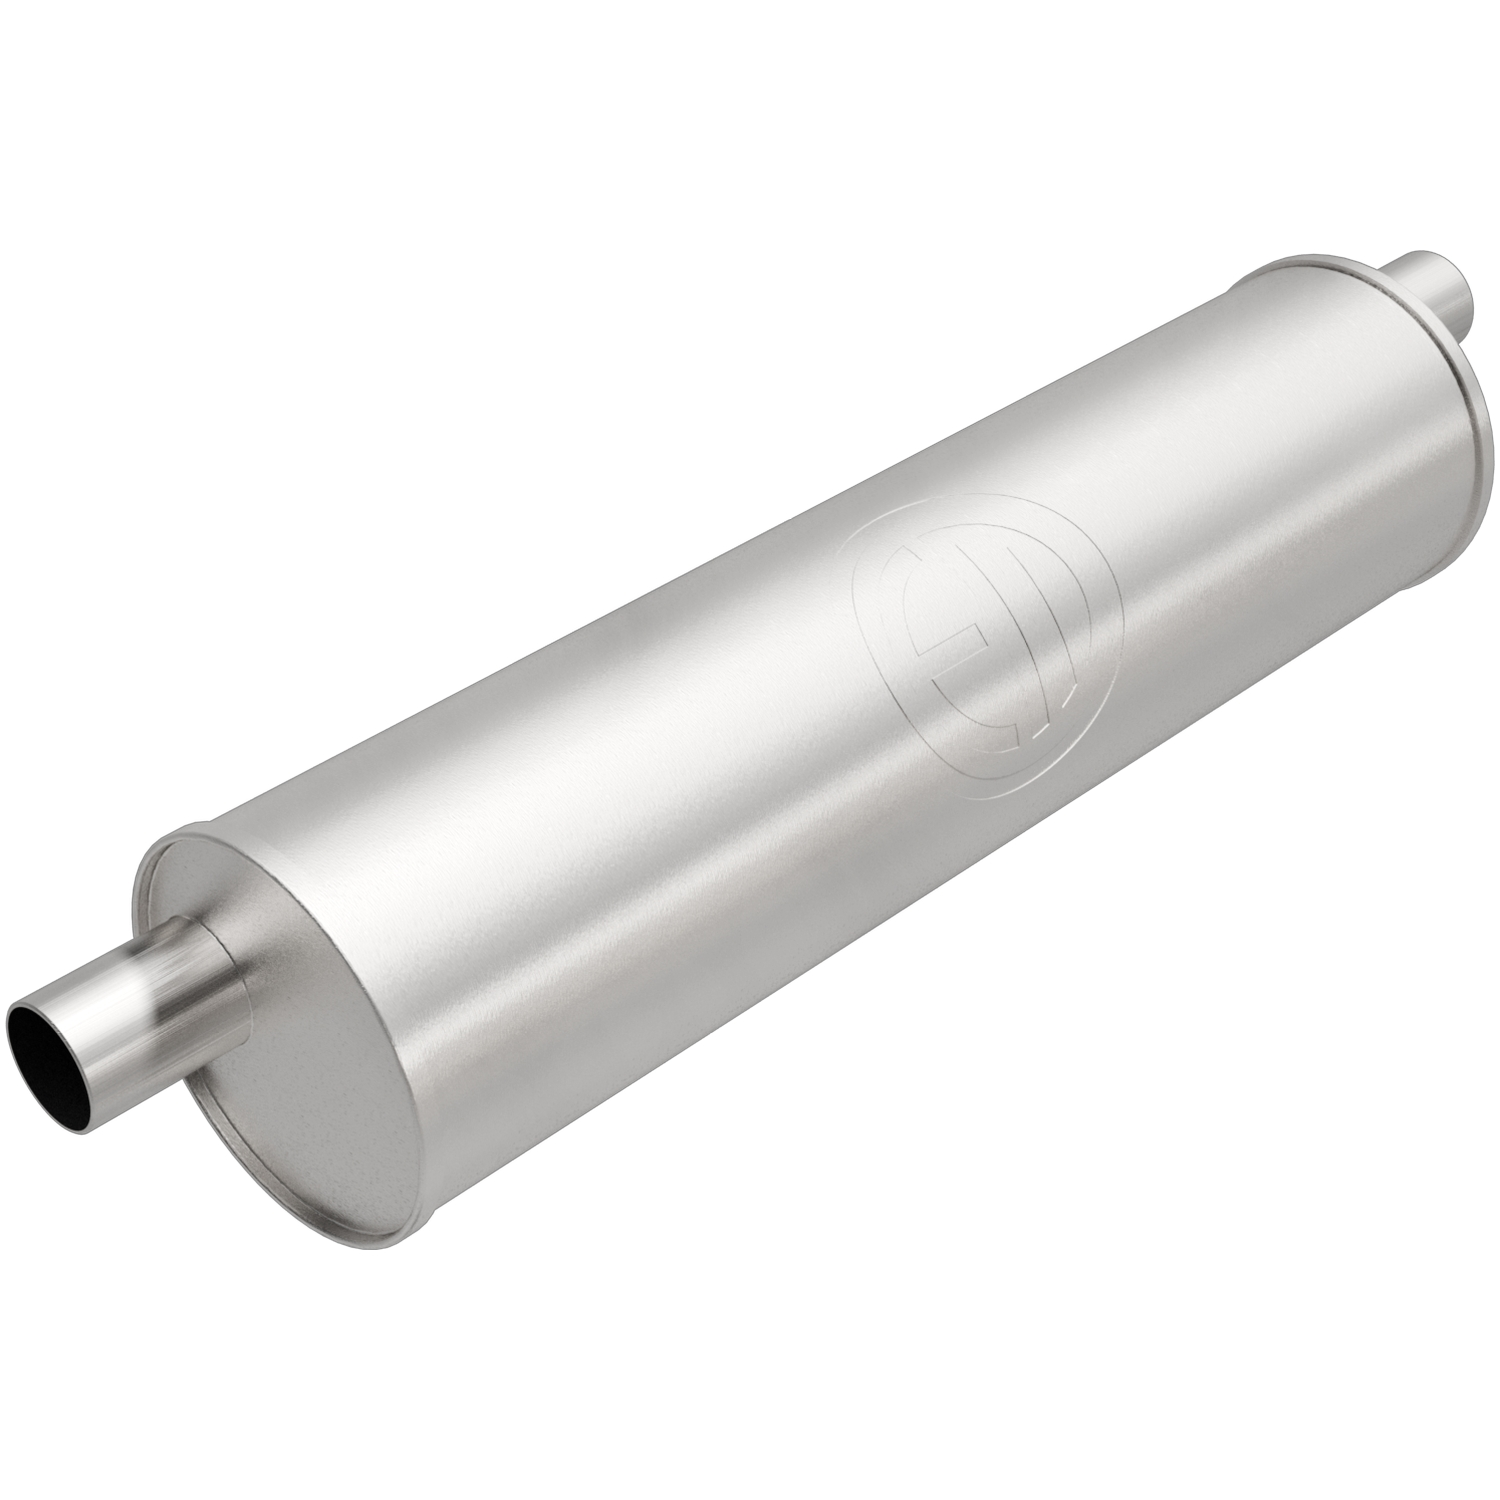 100-1741 Bosal USA Exhaust Muffler Aluminized Steel Case